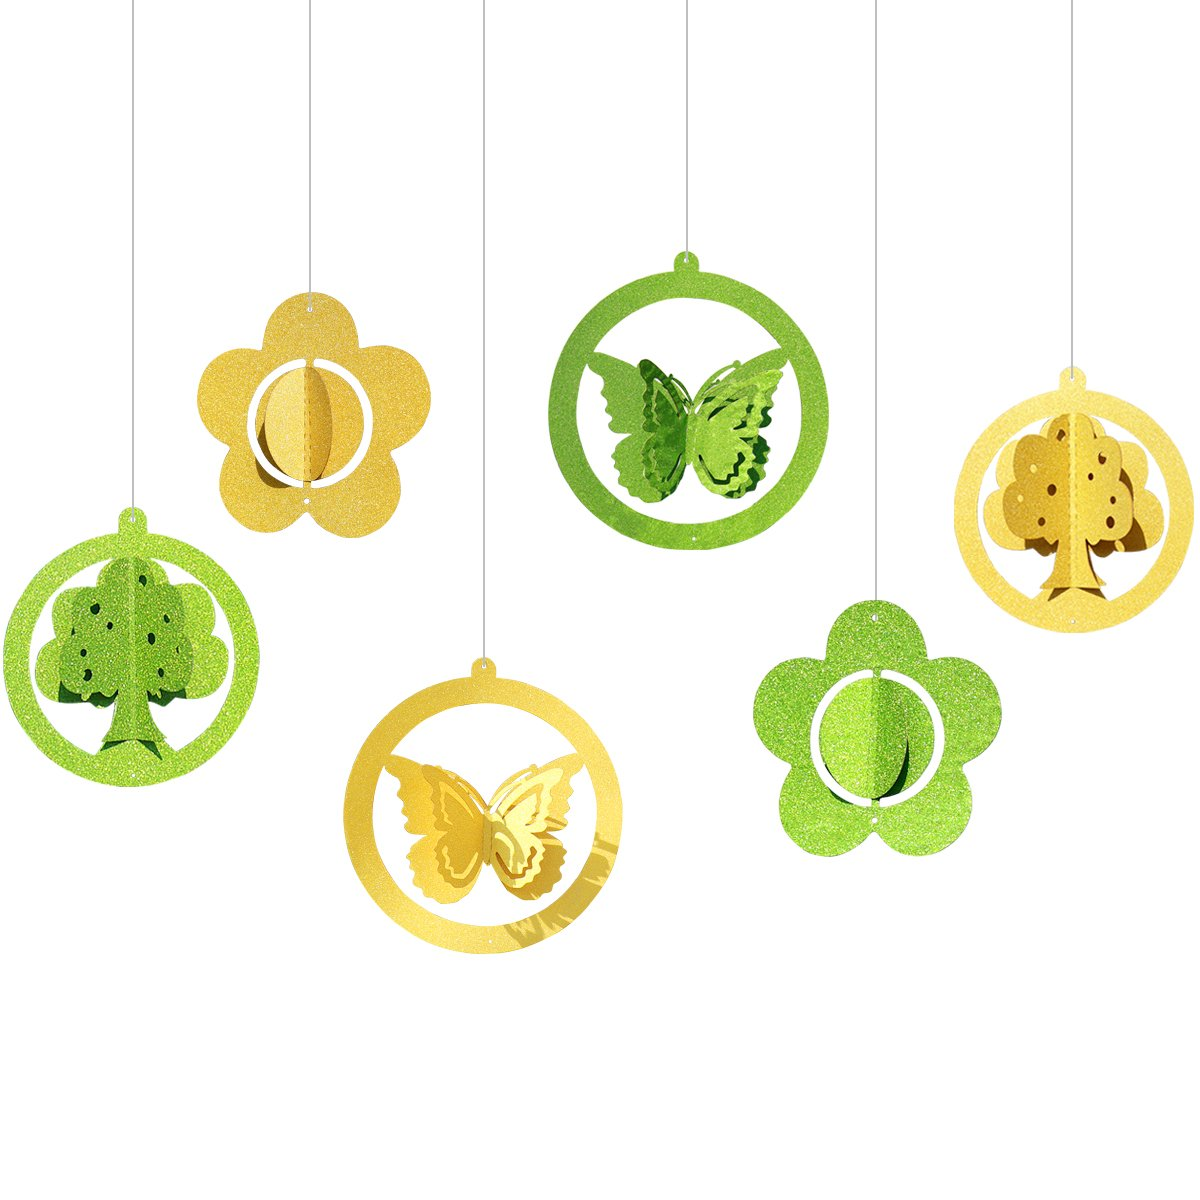 sparkling spring butterfly/three/flower hanging garland for girl's room,nursey,window,theme party decorations.(Yellow-Green)